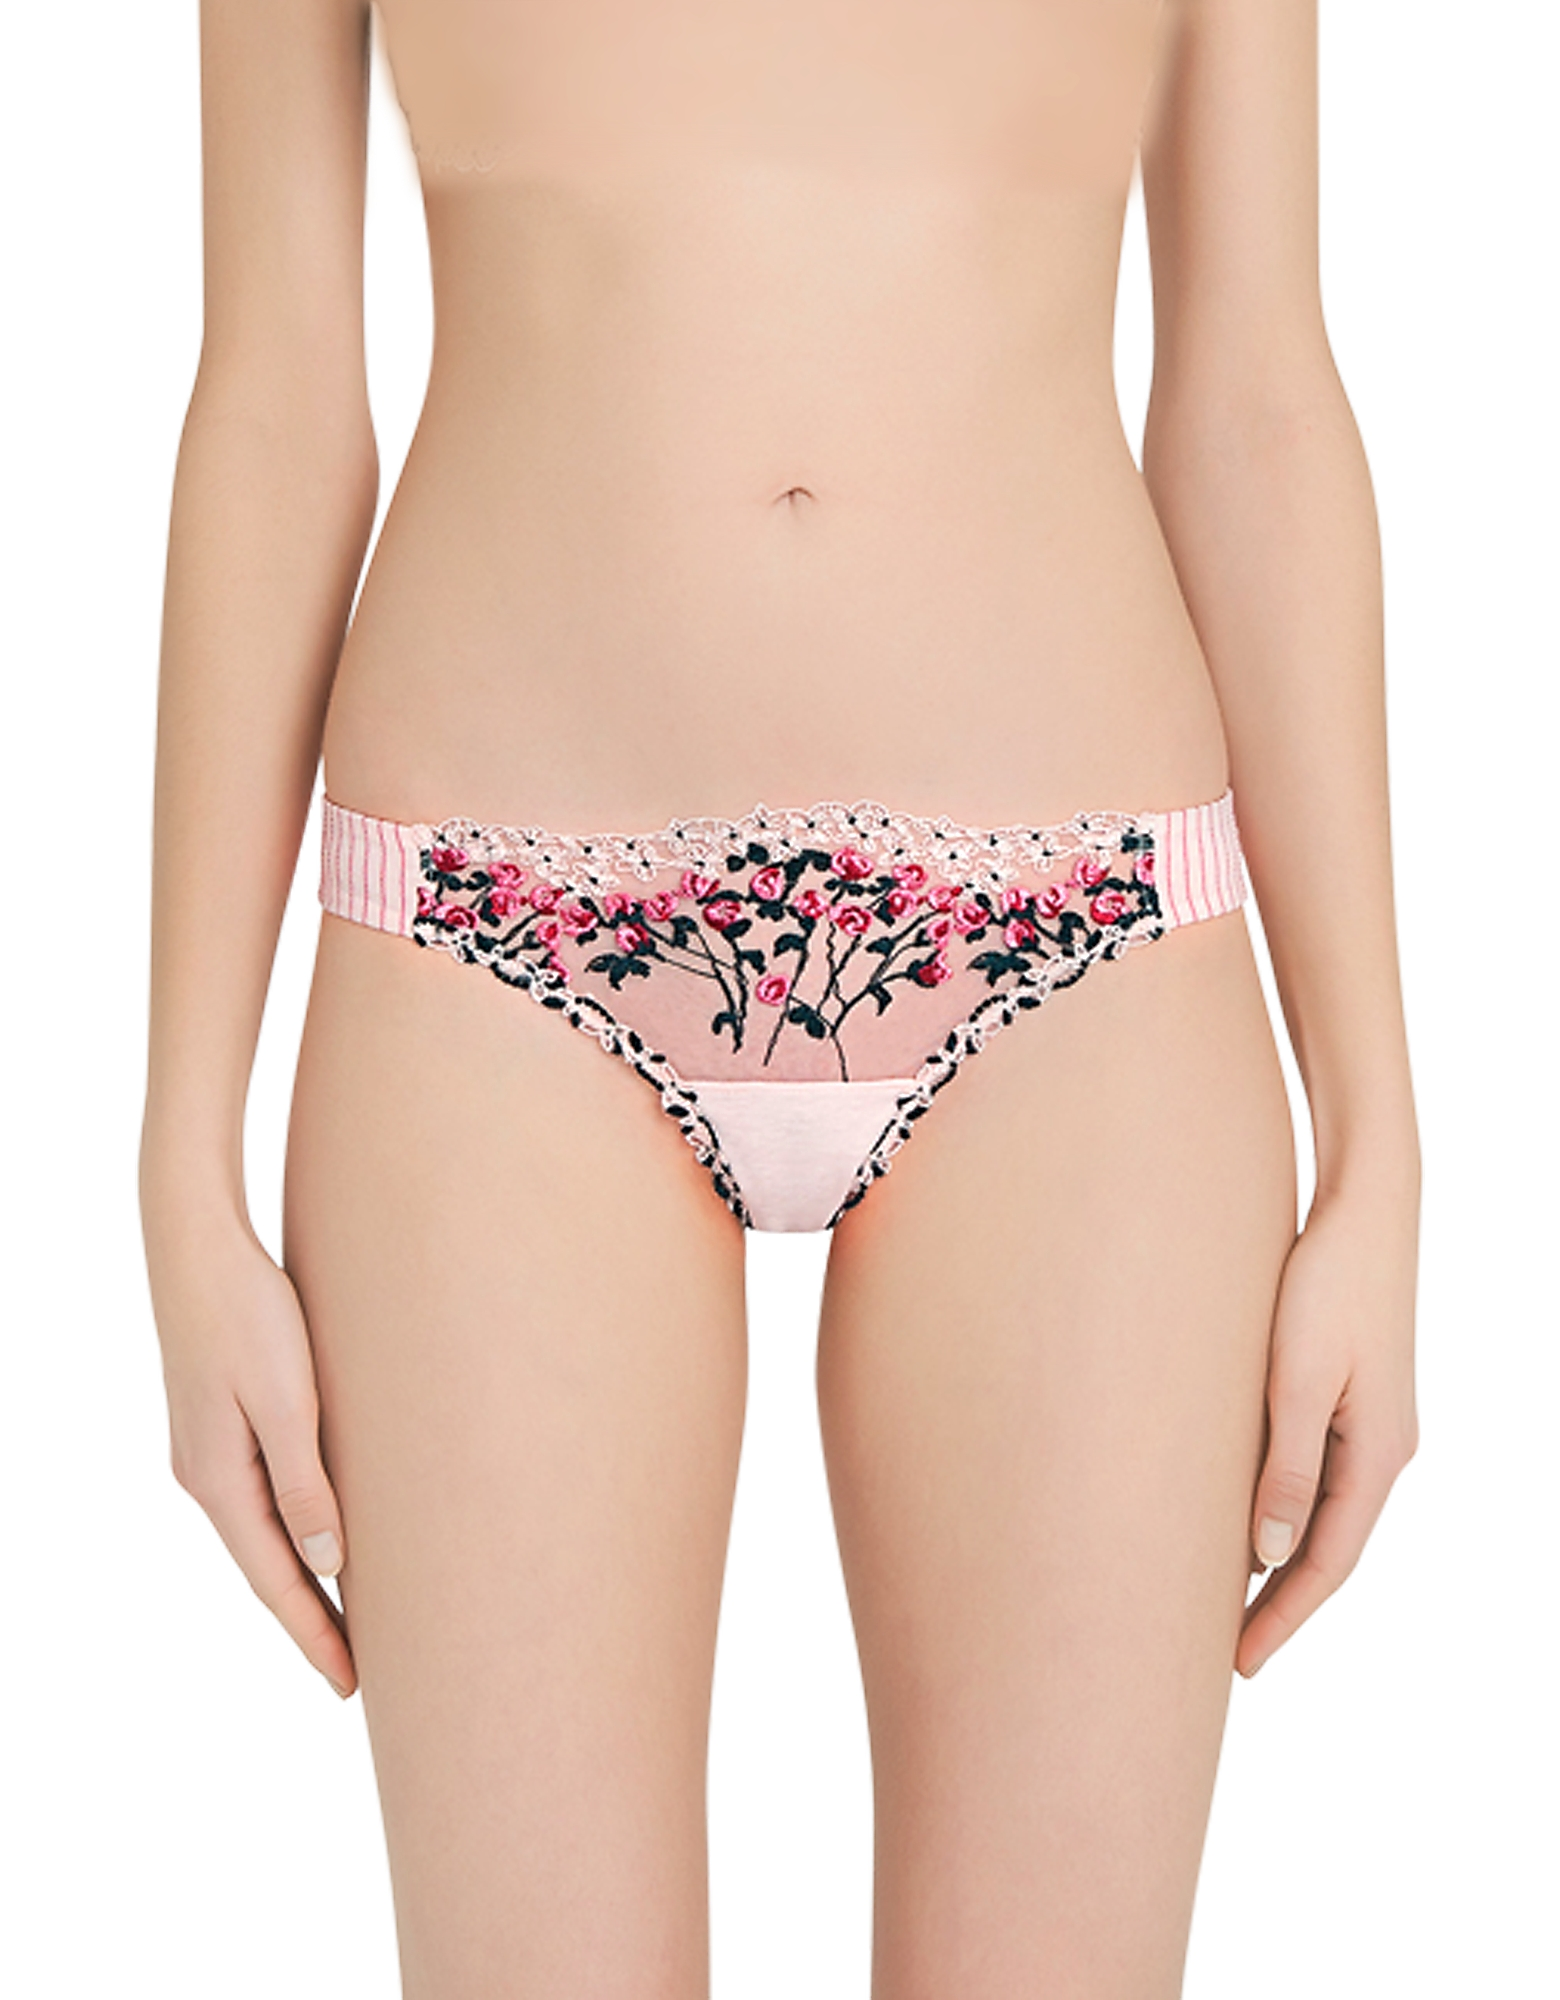 La Perla Panties, Garden Party Powder Pink Embroidered Tulle and Modal Brazilian Briefs